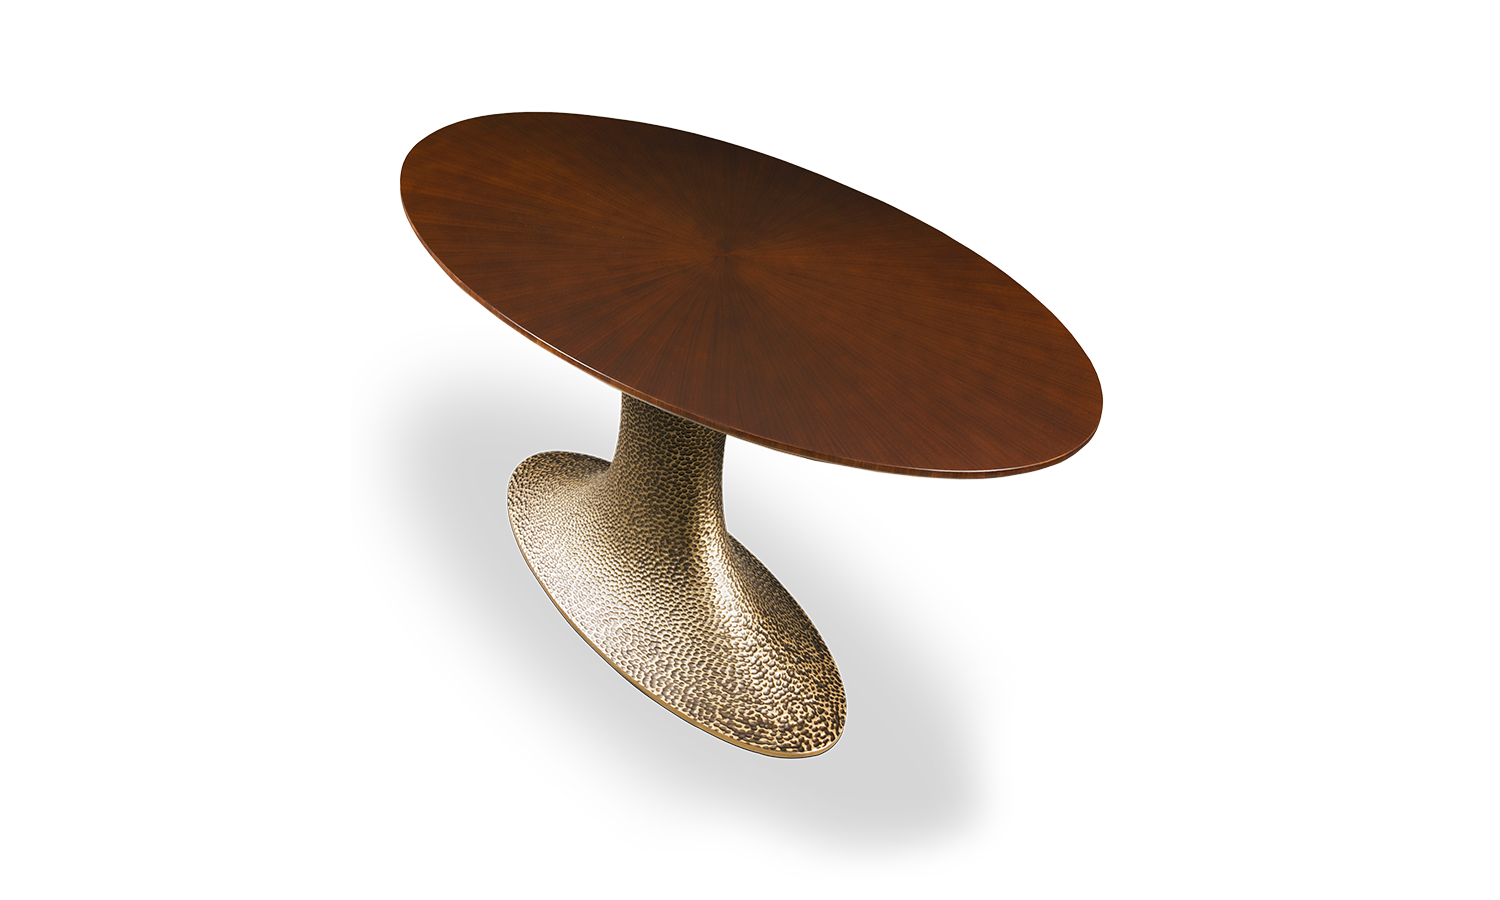 table_ines_hammered_oval_hamiltonconte_packshot3.png